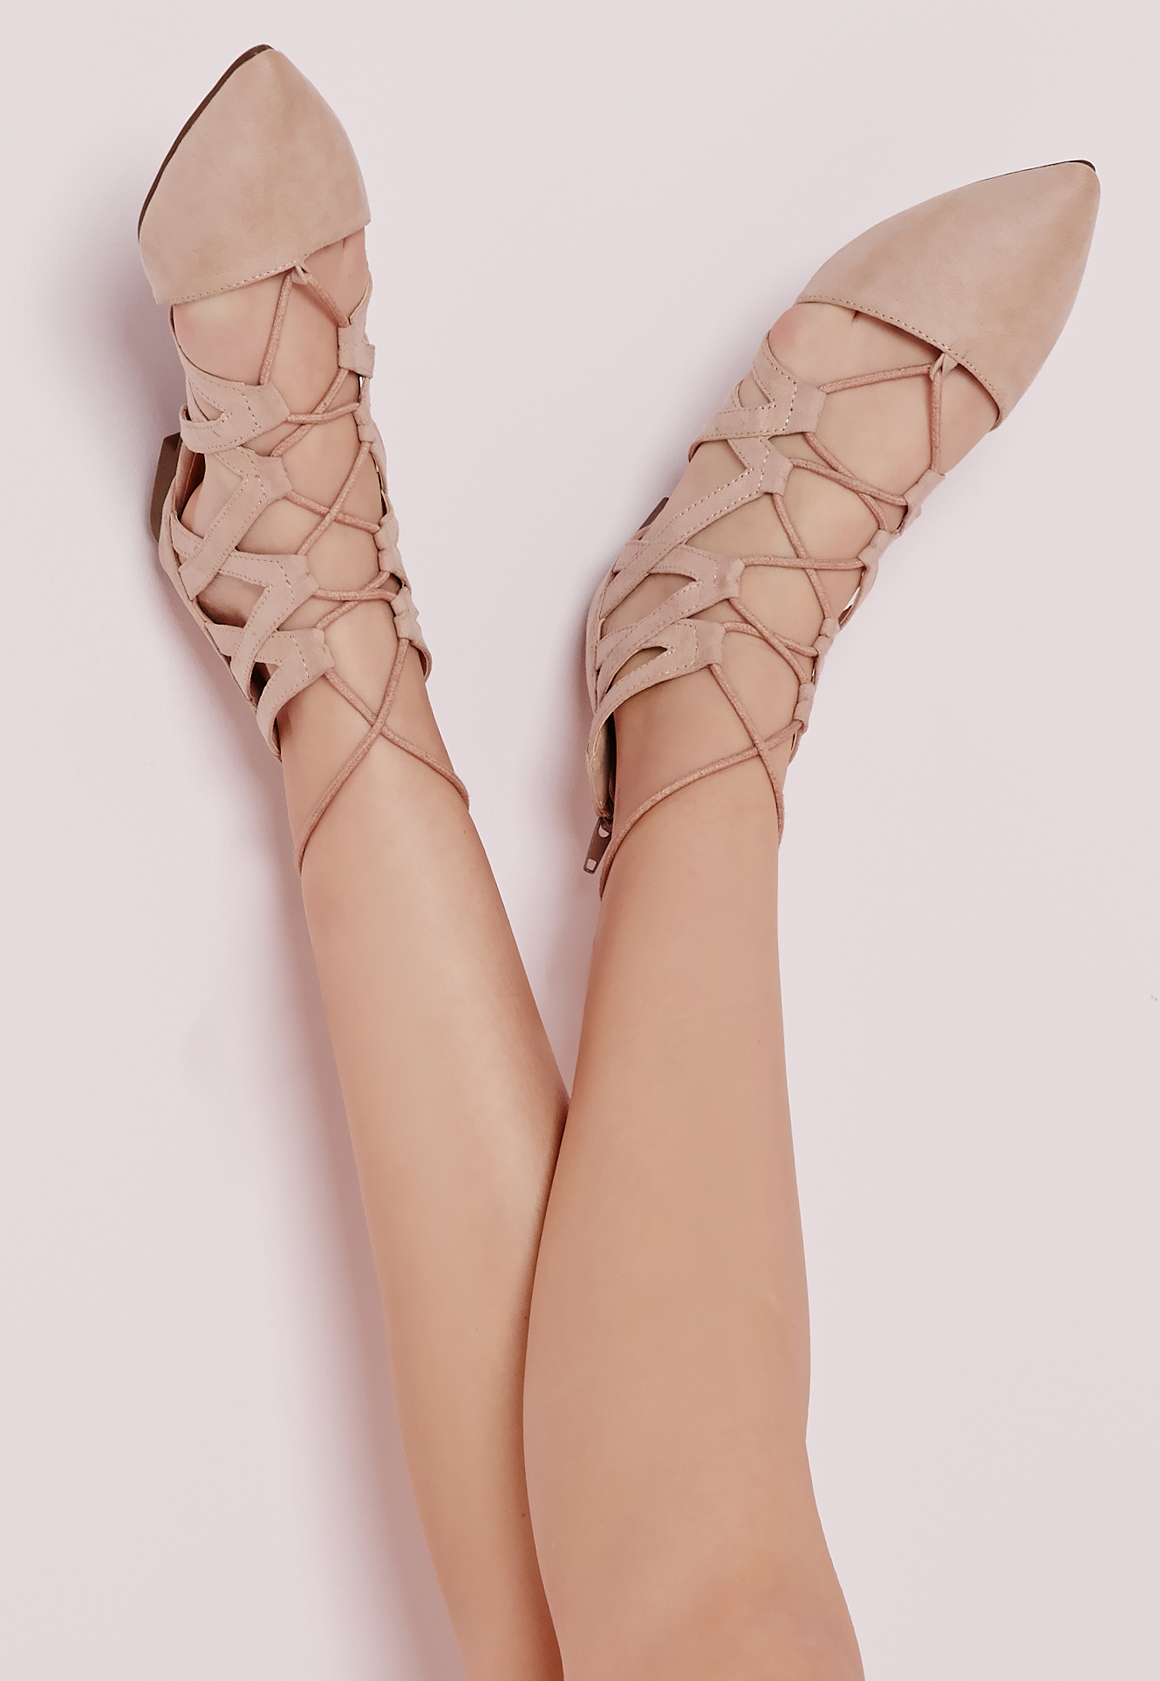 09fd5cebd23 Gallery. Women s Lace Up Flats Women s Nude Ballerina Pumps ...